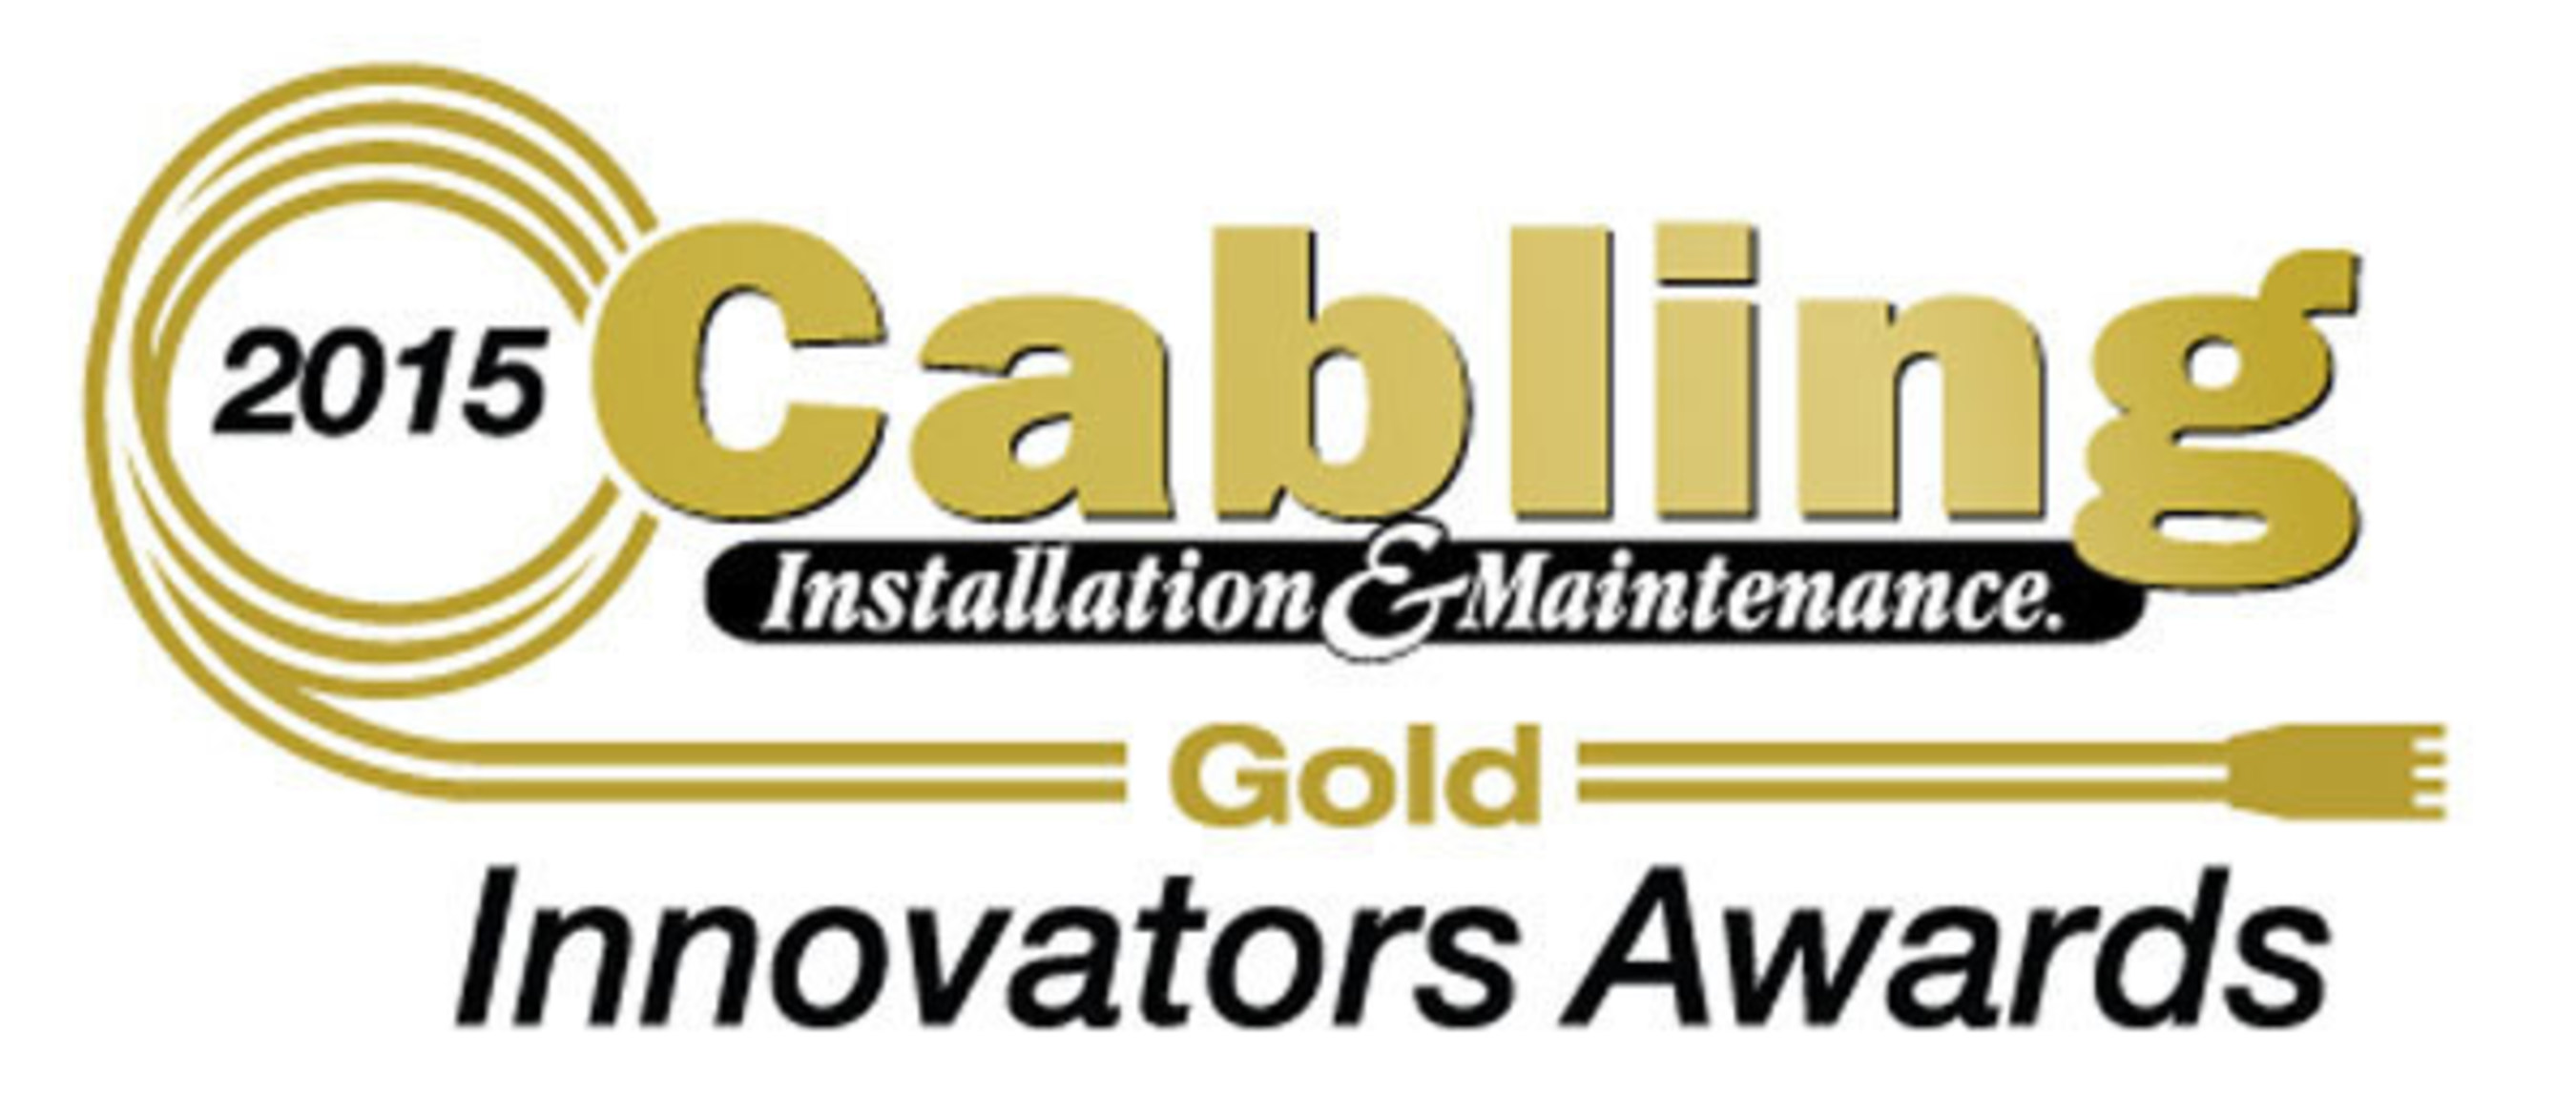 Leviton Network Solutions and eBay Honored by Cabling Installation & Maintenance 2015 Innovators Awards Program